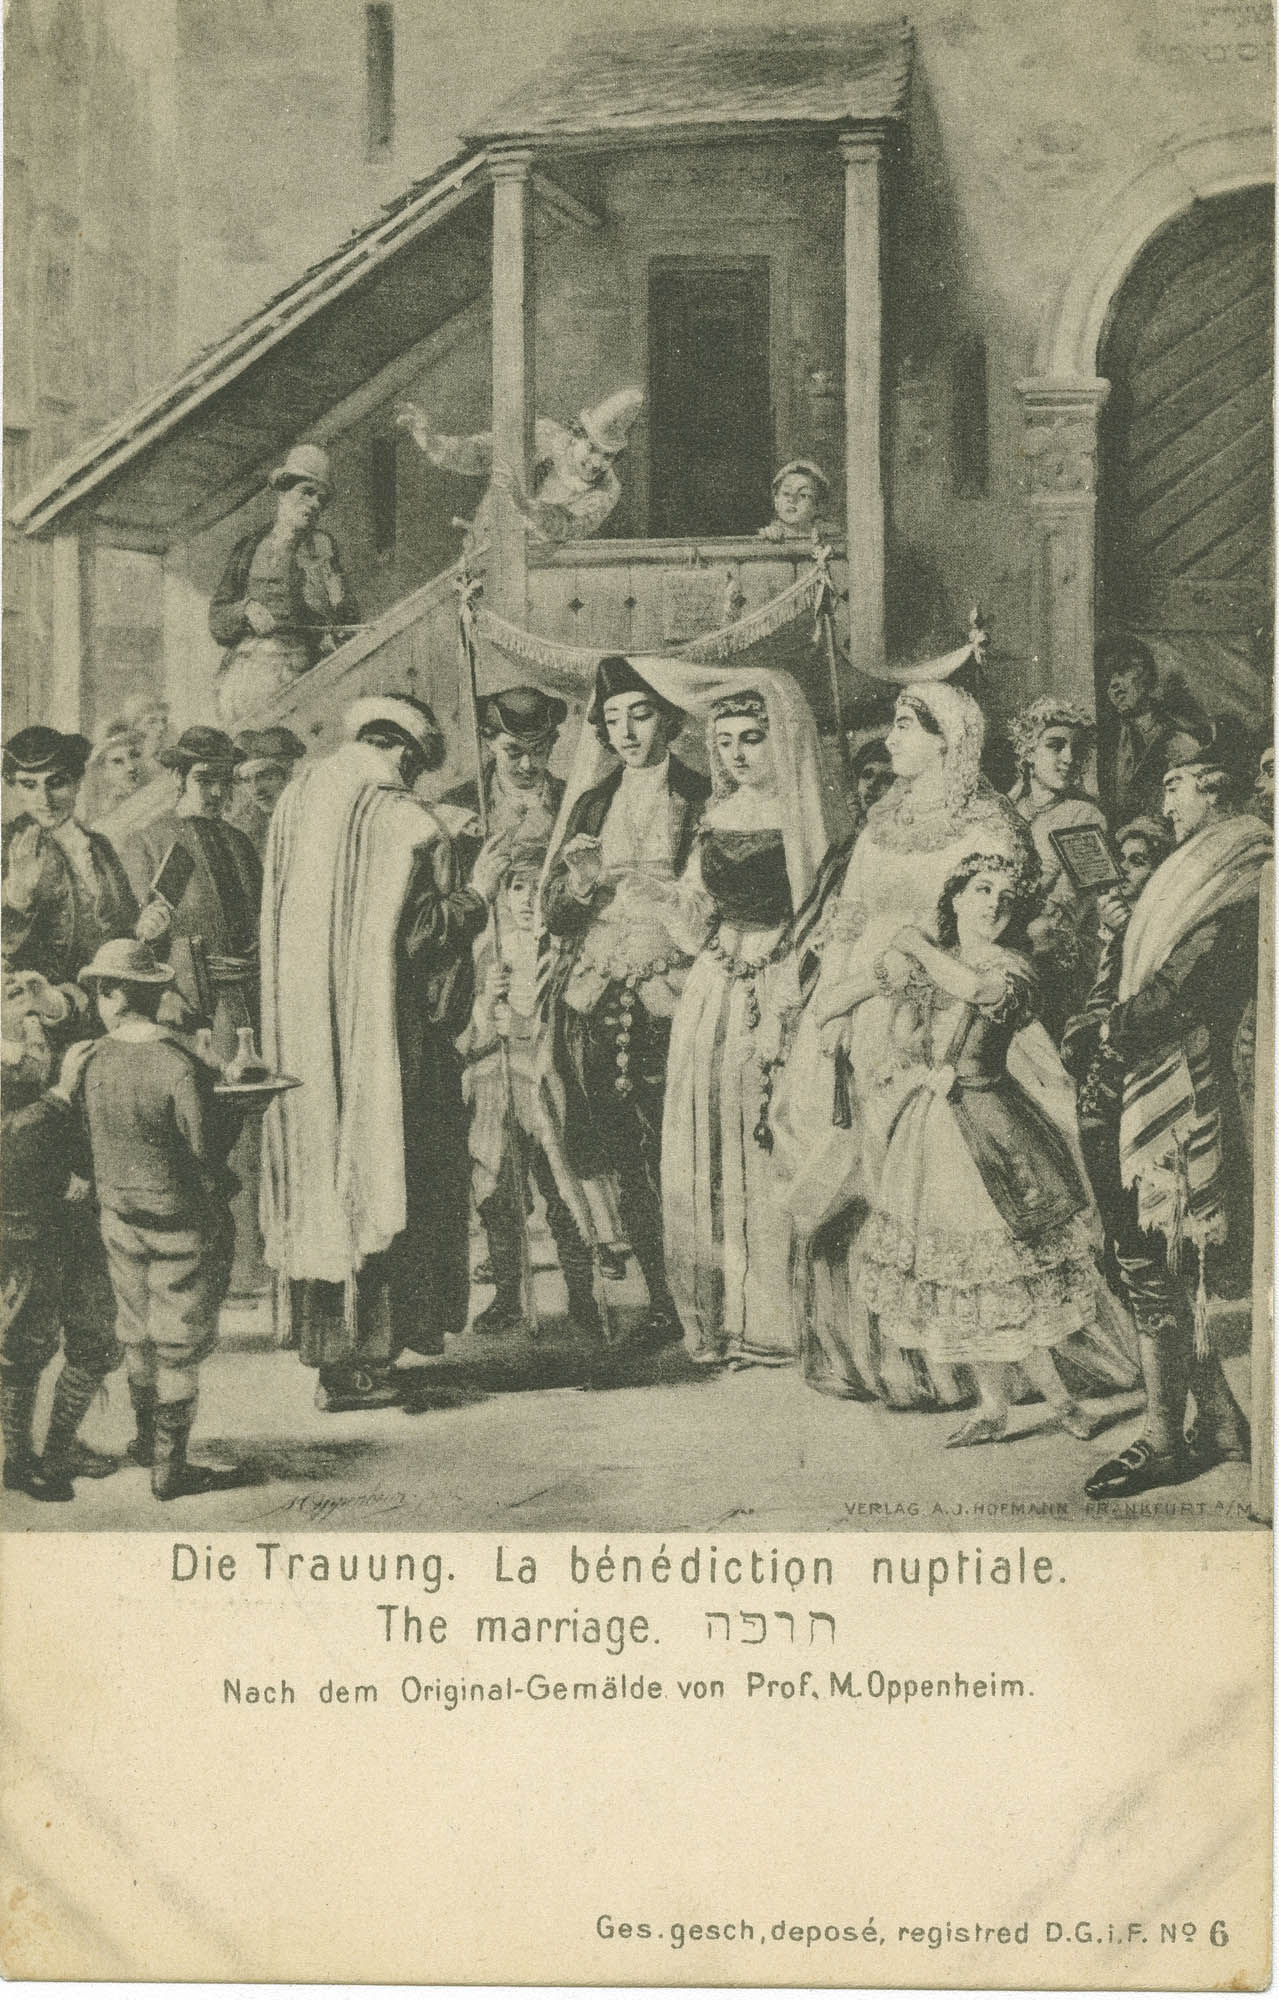 Die Trauung. / La bénédiction nuptiale. / The marriage. / חופה